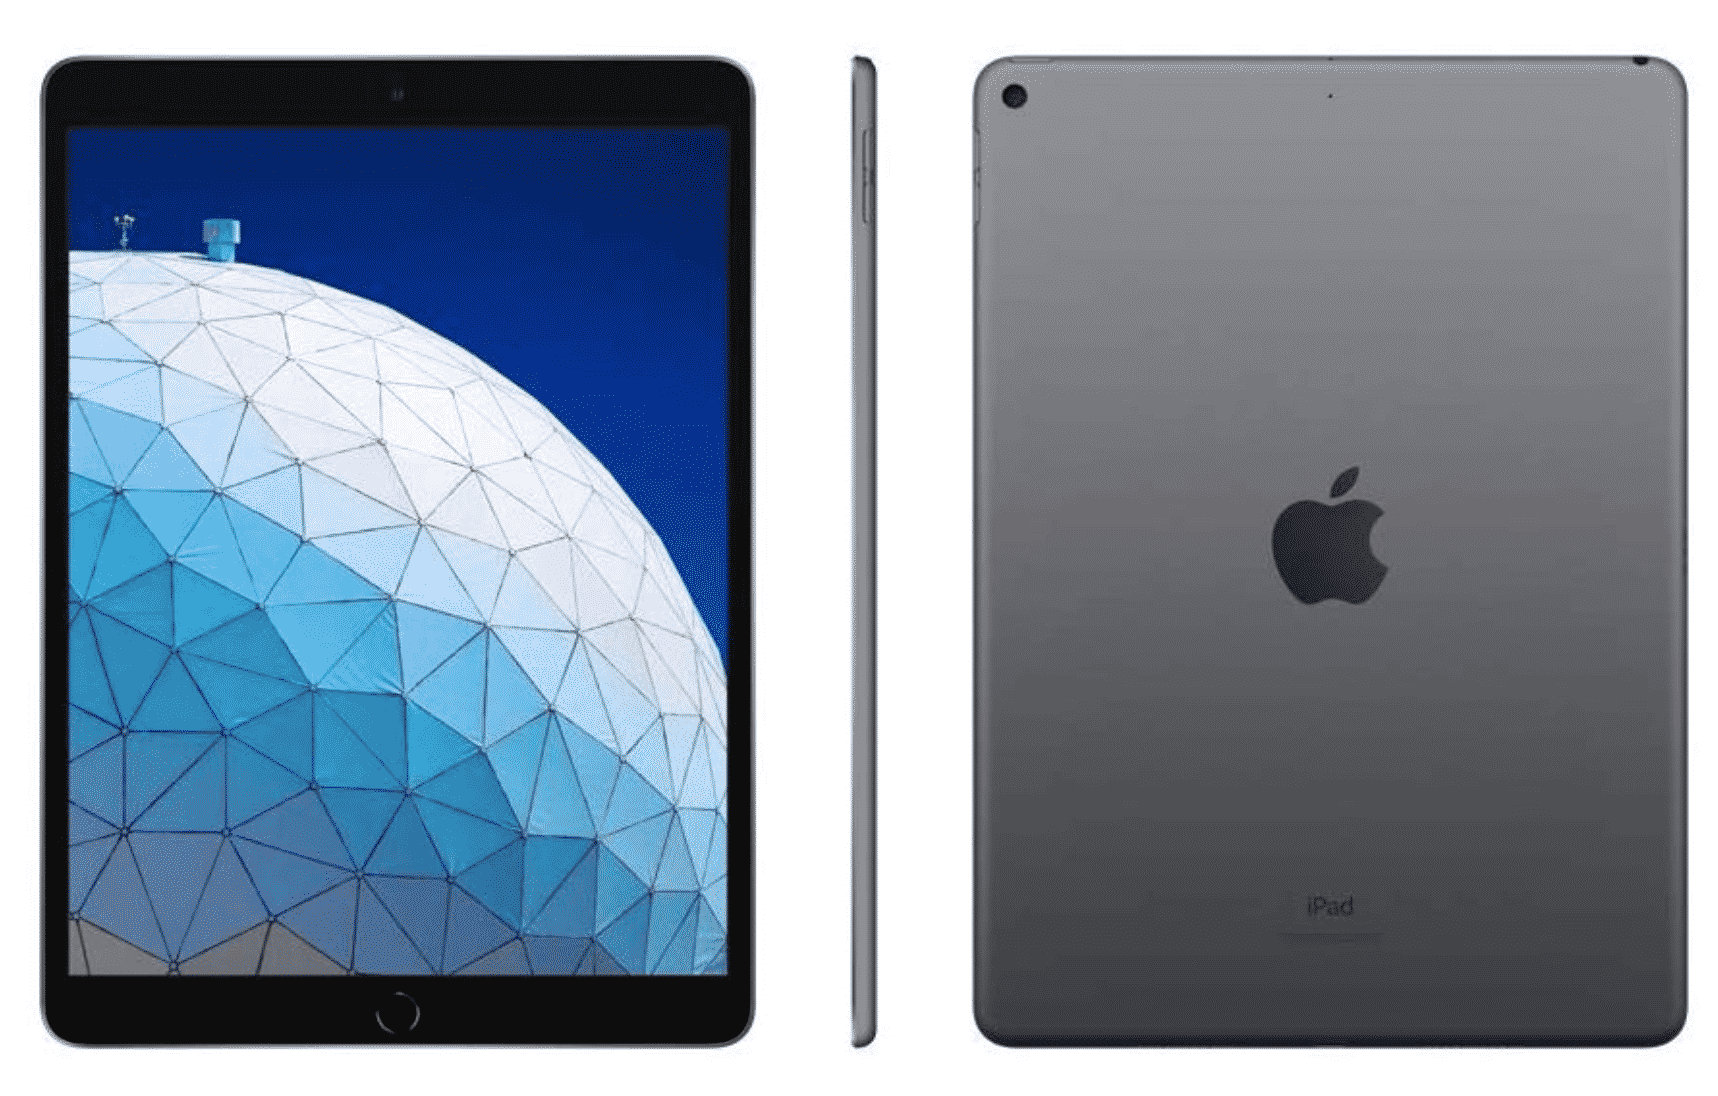 iPad Air Price Drops to Just $459